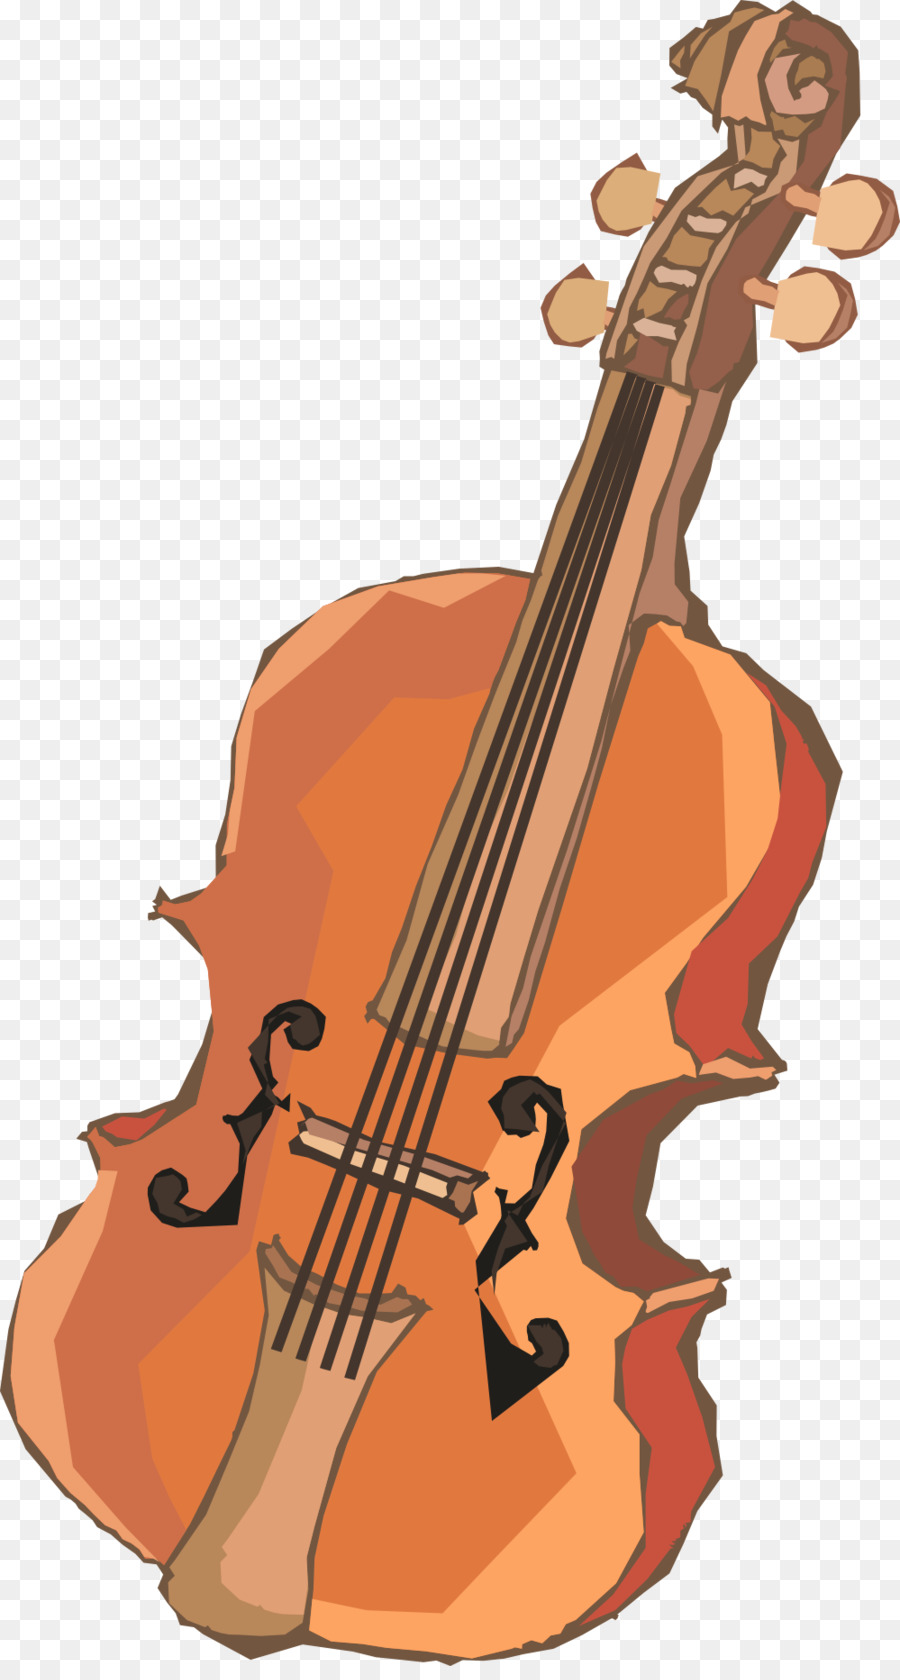 svg royalty free download Cello clipart tool. Violin transparent vintage clip.